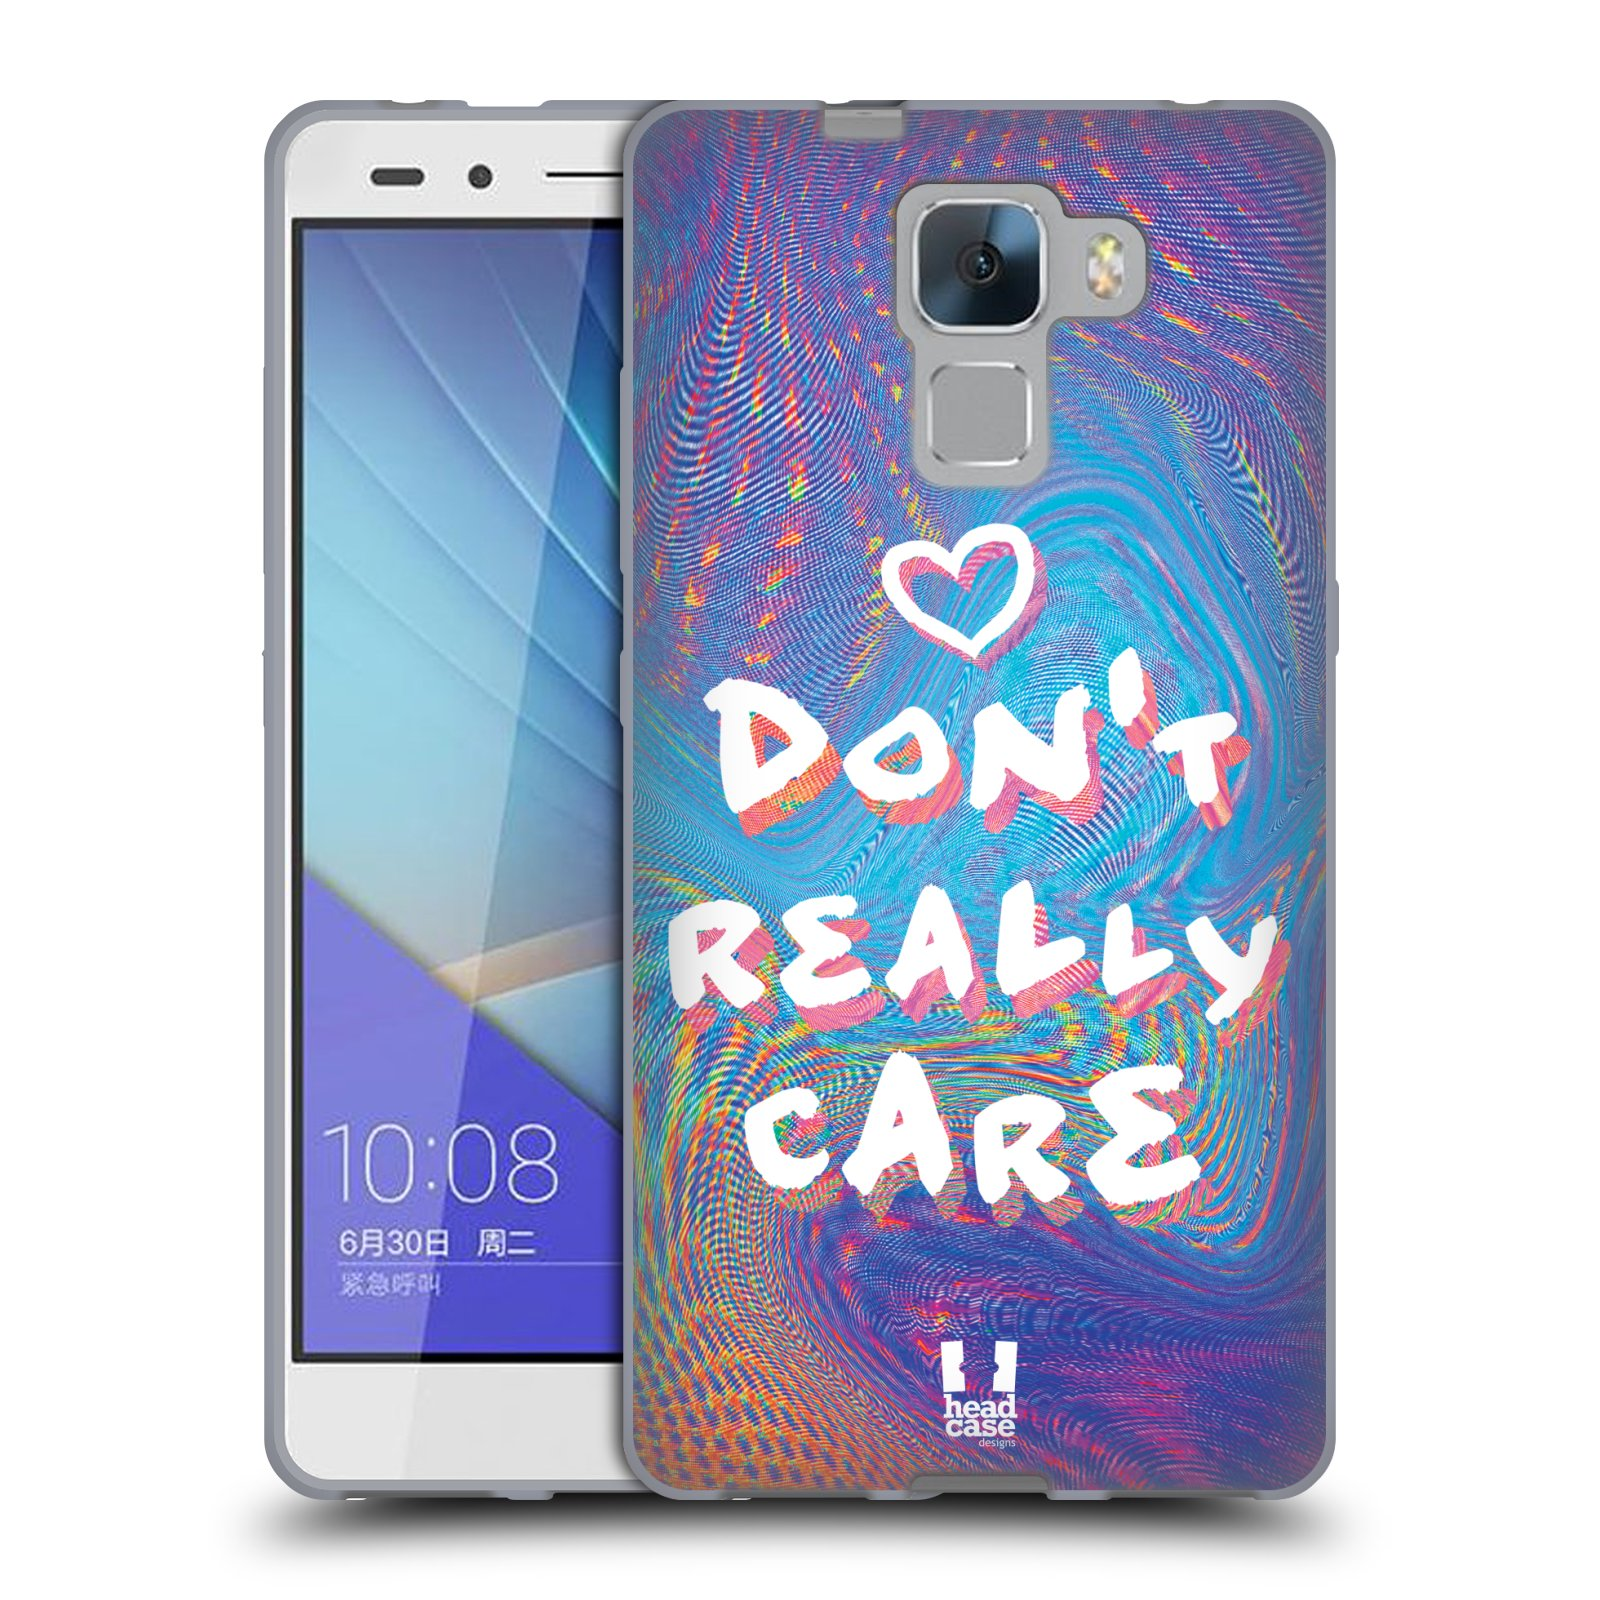 Silikonové pouzdro na mobil Honor 7 HEAD CASE HOLOGRAF DON'T CARE